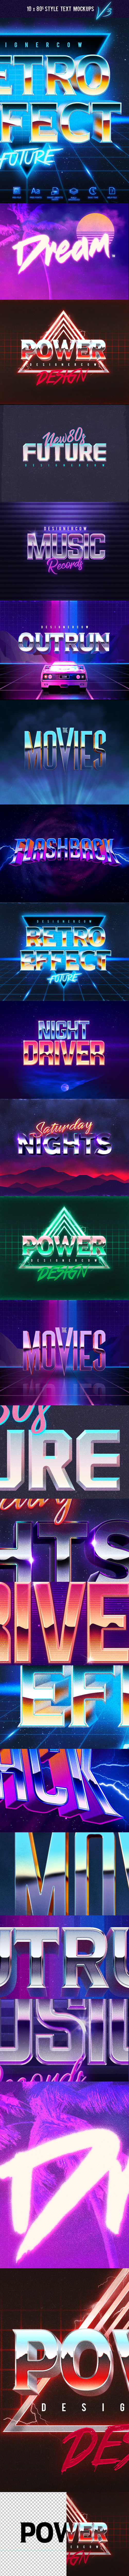 80's Style Text Mockups V3 - Text Effects Actions